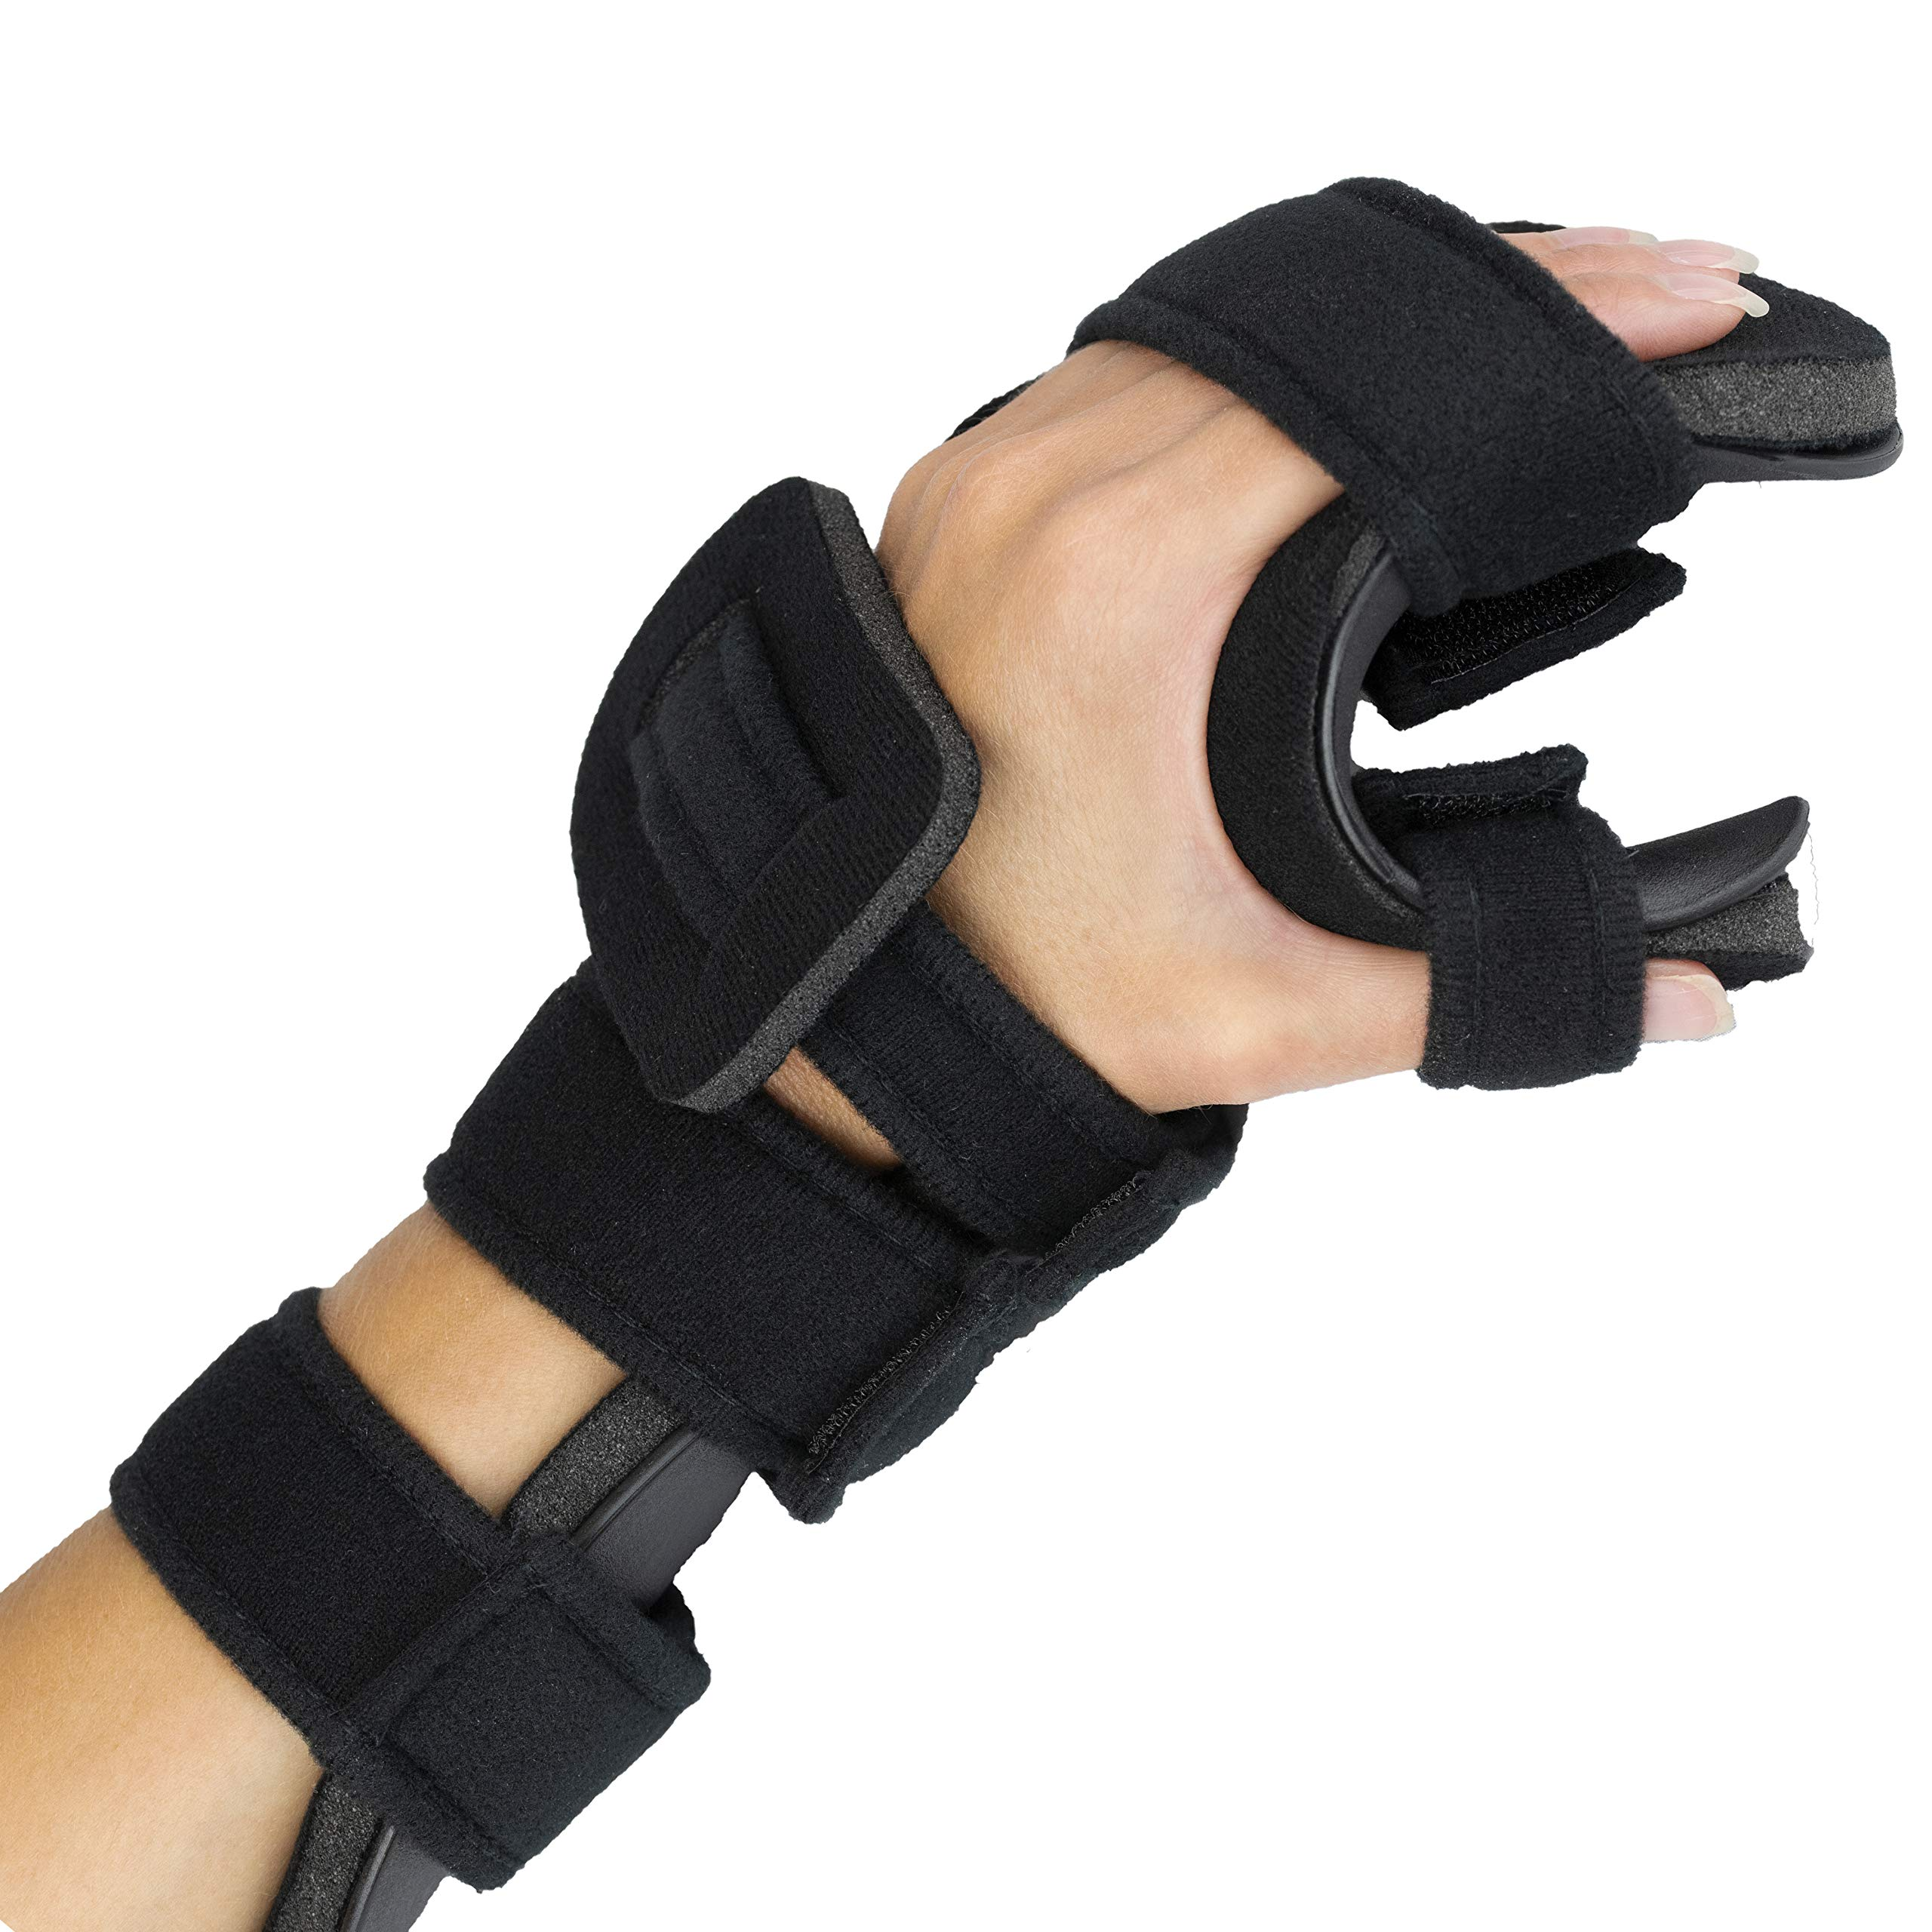 Stroke Hand Splint- Soft Resting Hand Splint for Flexion Contractures, Comfortably Stretch and Rest Hands for Long Term Ease with Functional Hand Splint, an American Heritage Industries (Left, Medium) by American Heritage Industries